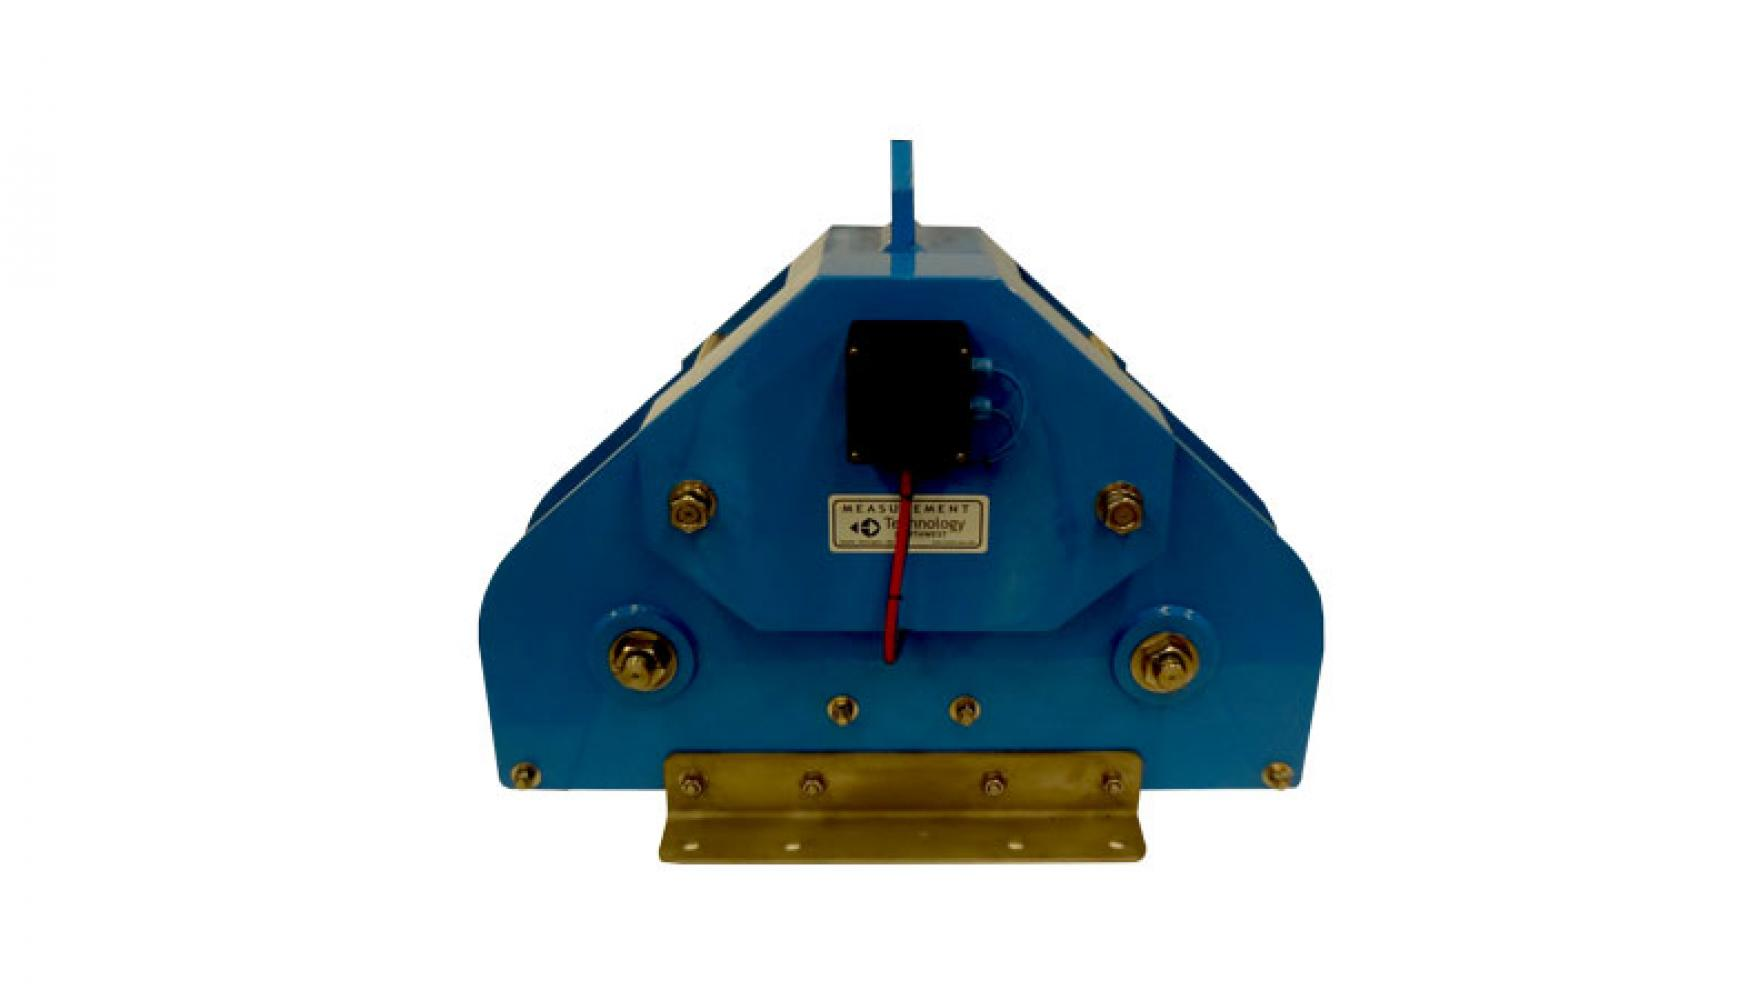 tensiometer, line, rider, running, dynamometer, loadcell, towage, salvage, winch, tension, force, cable, rope, RLT, RL-10, RL-20, RL-30, RL-40, dynaline, motion, running line tensiometers